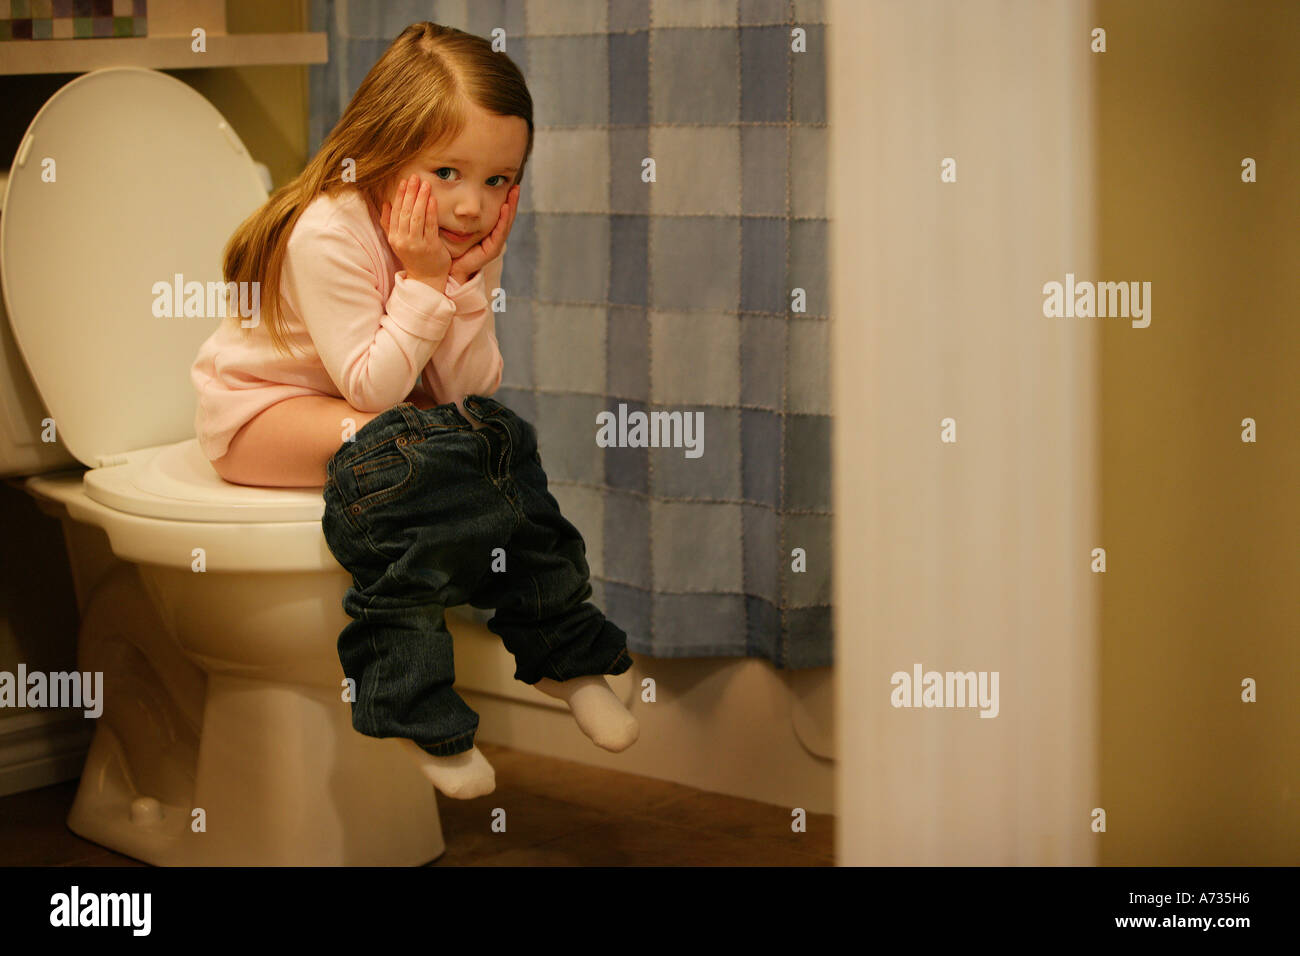 What necessary Young girl candid bathroom are